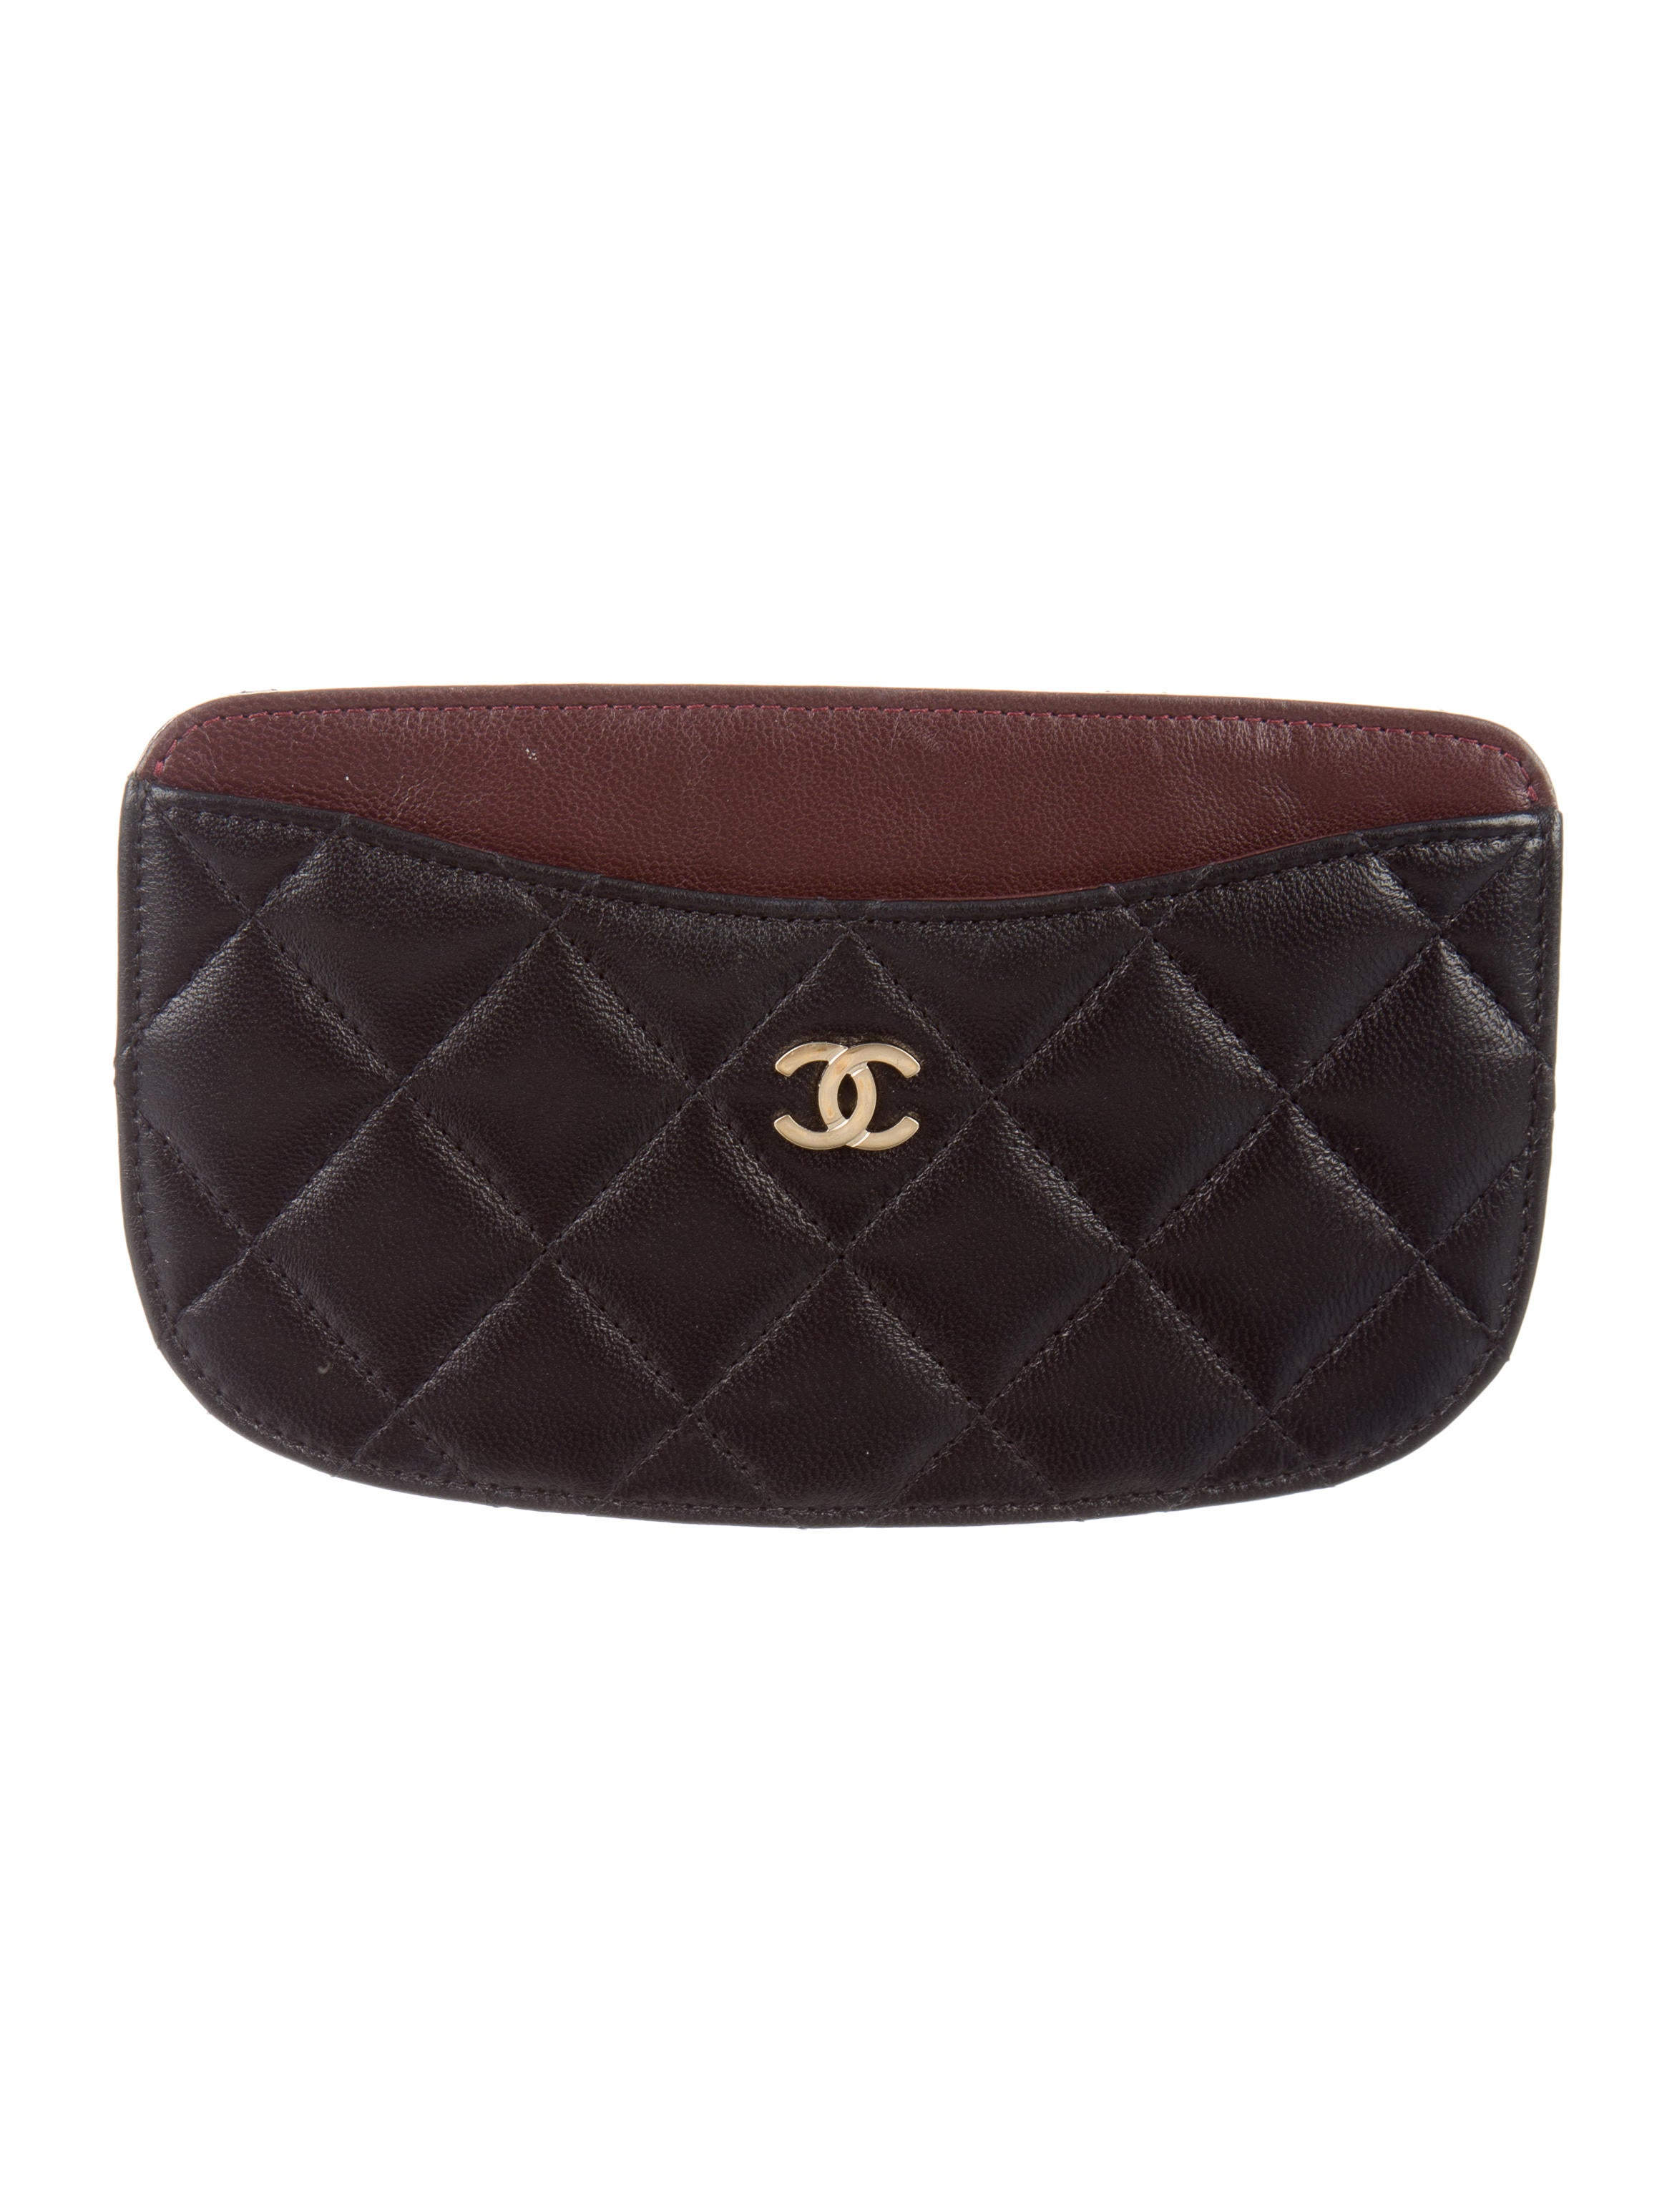 Chanel Quilted Card Holder - Accessories - CHA175140 | The ...